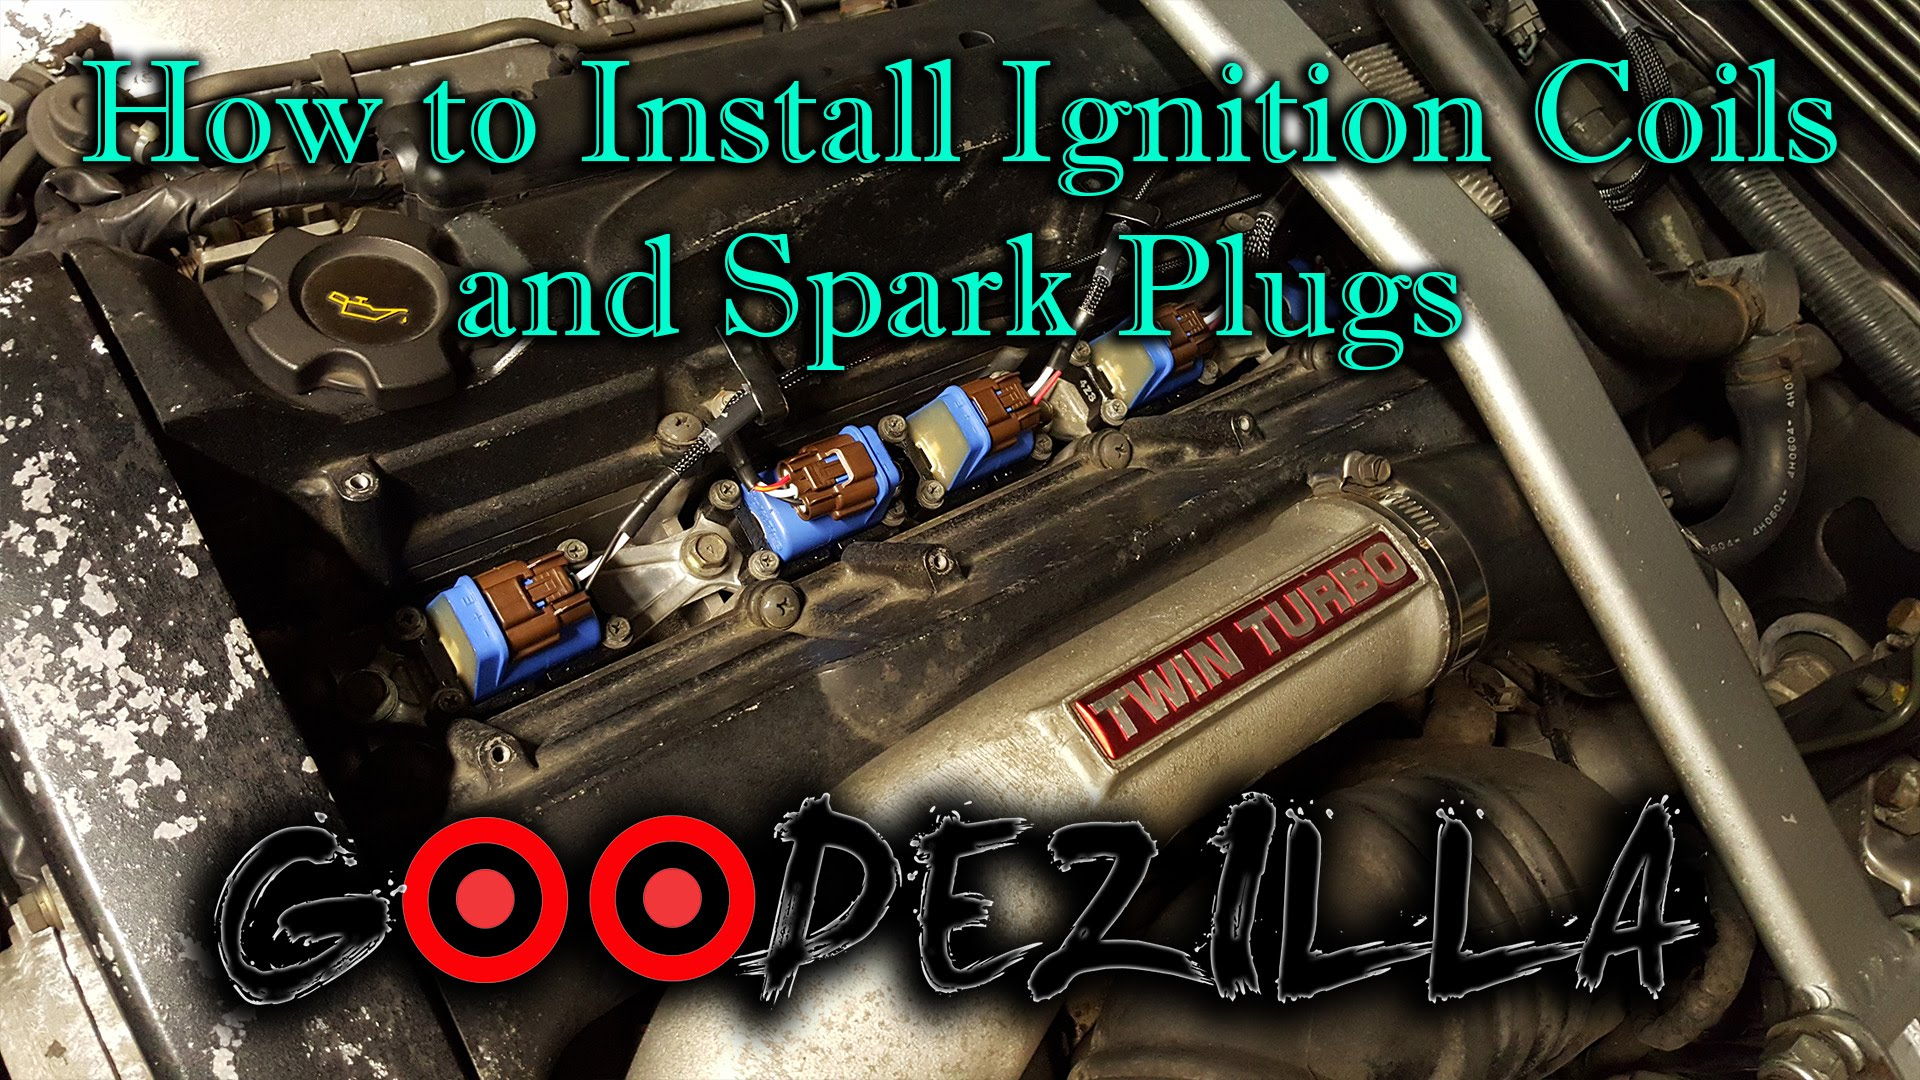 How to Install Ignition Coils and Spark Plugs on a R32